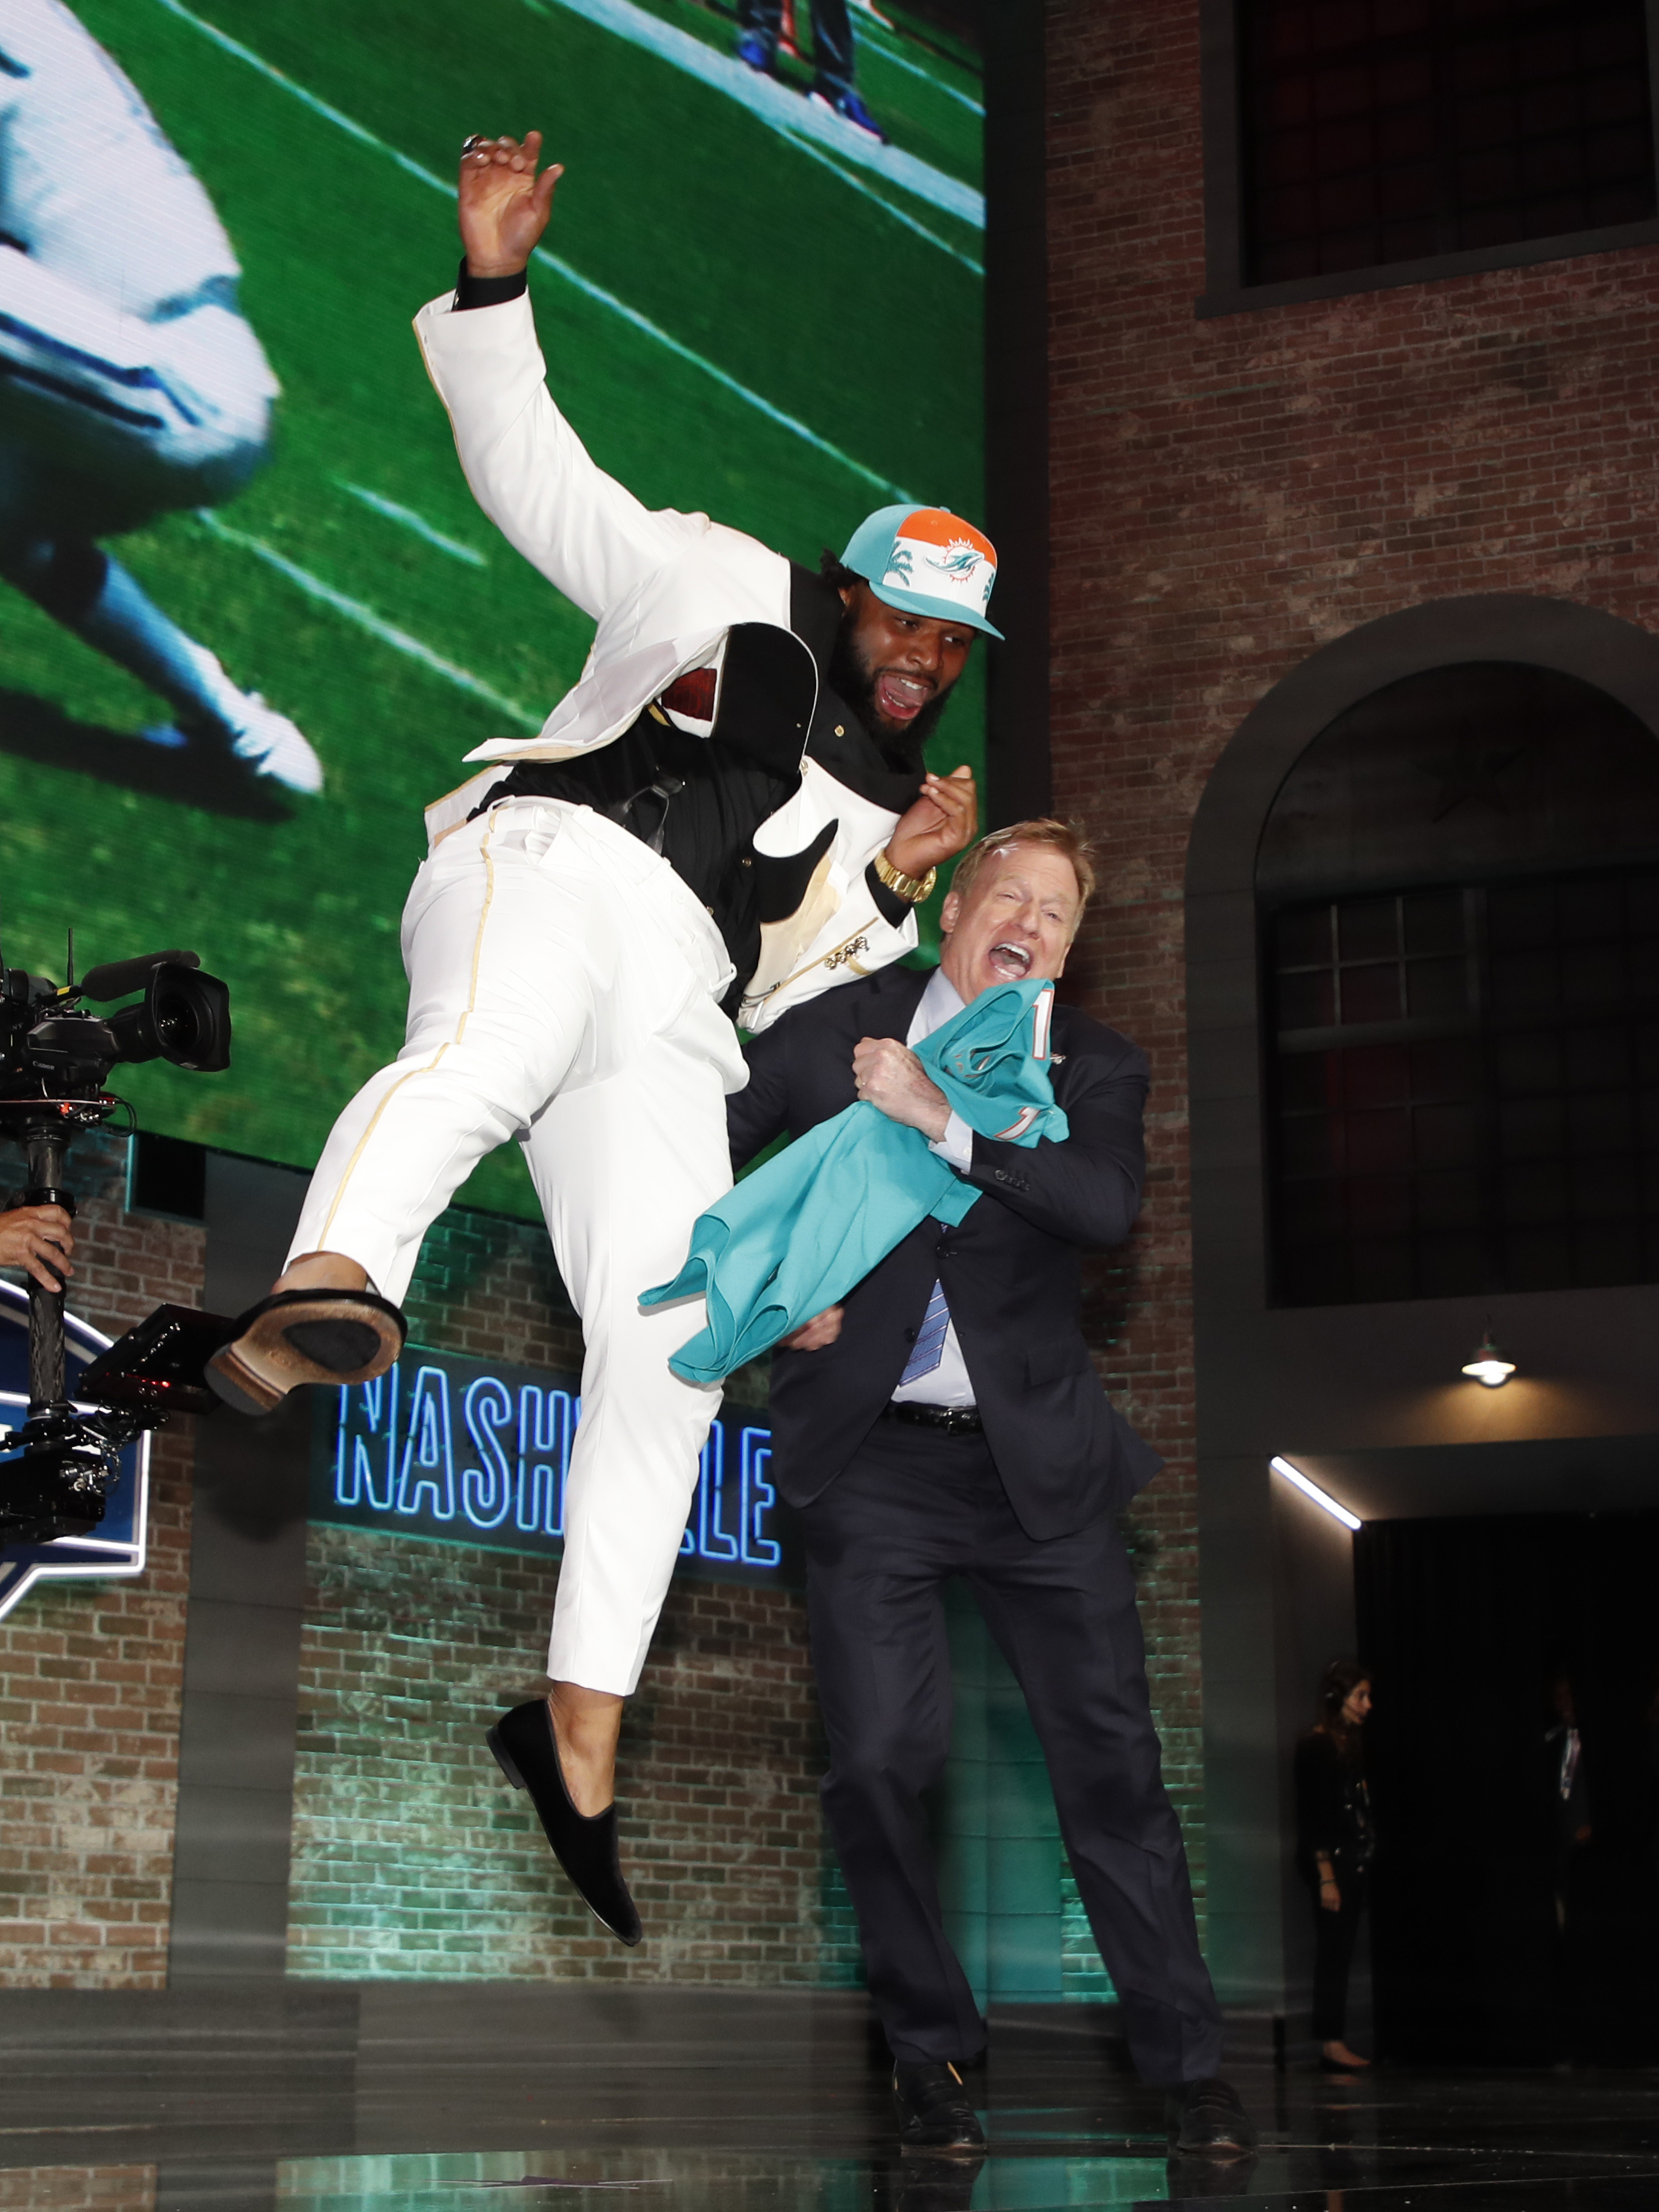 Christian Wilkins leaps into NFL Commissioner Roger Goodell after the Miami Dolphins selected Wilkins in the NFL football draft, Thursday, April 25, 2019, in Nashville, Tenn.